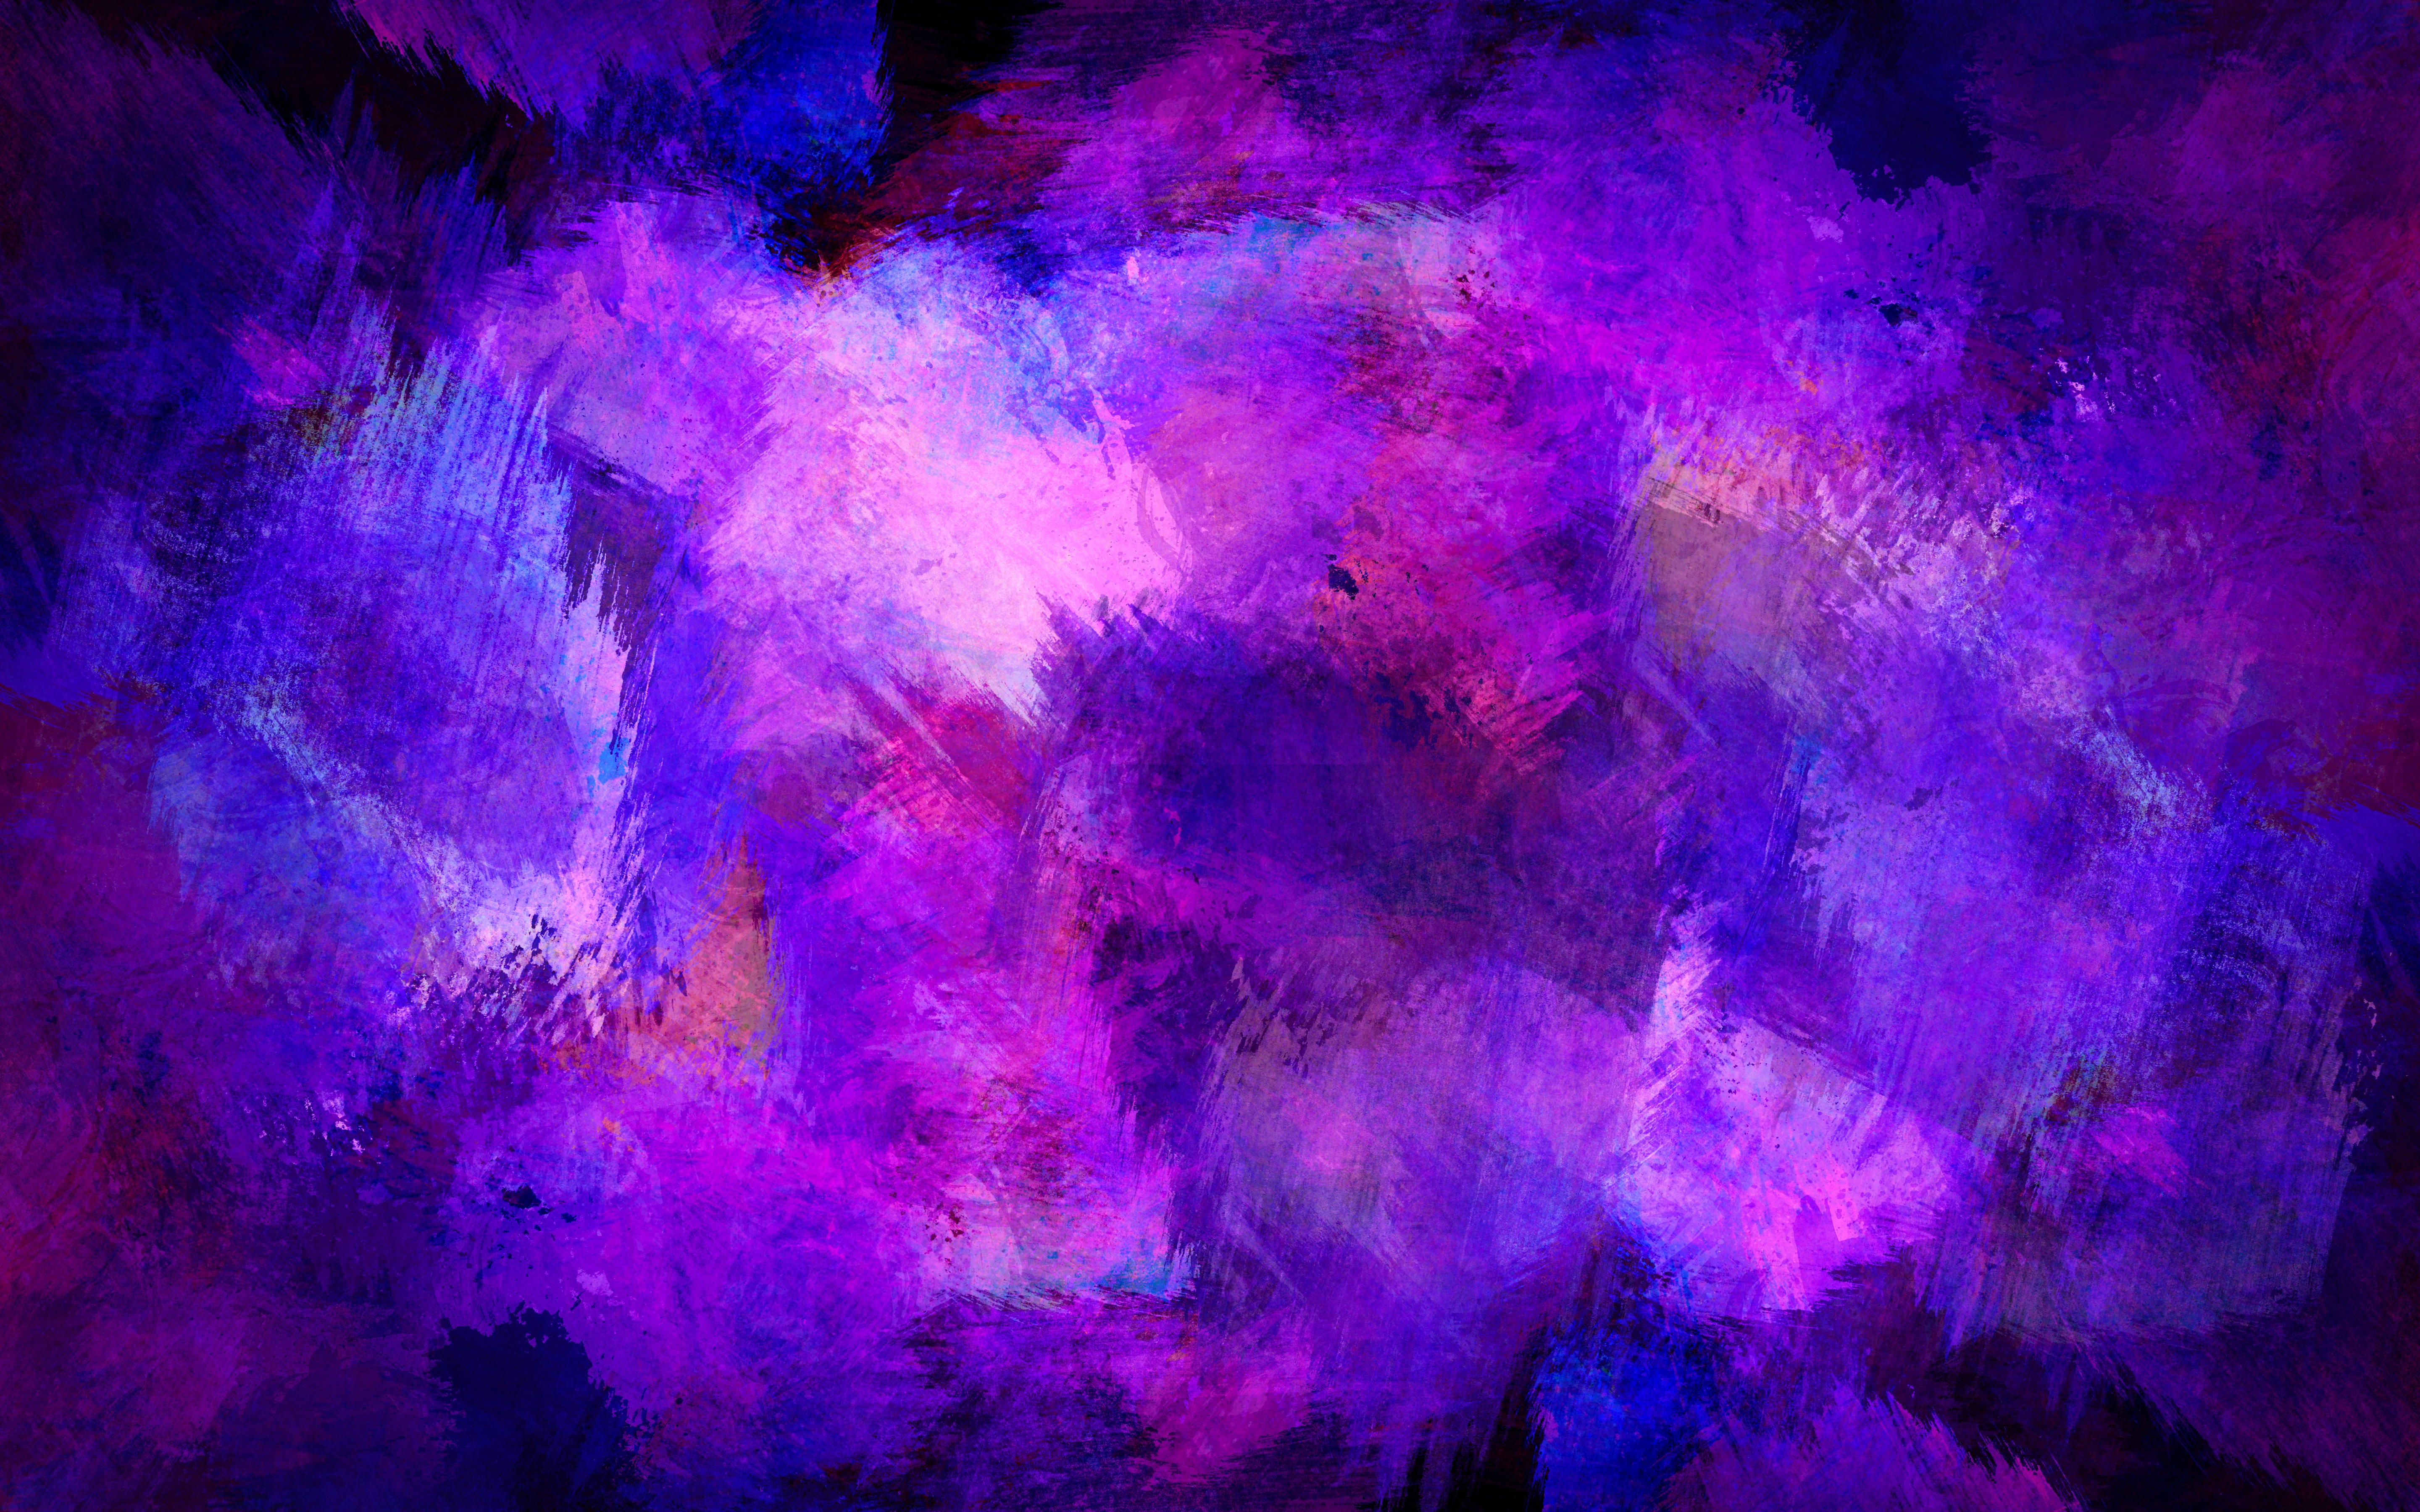 123786 download wallpaper Purple, Texture, Violet, Textures, Paint, Stains, Spots screensavers and pictures for free